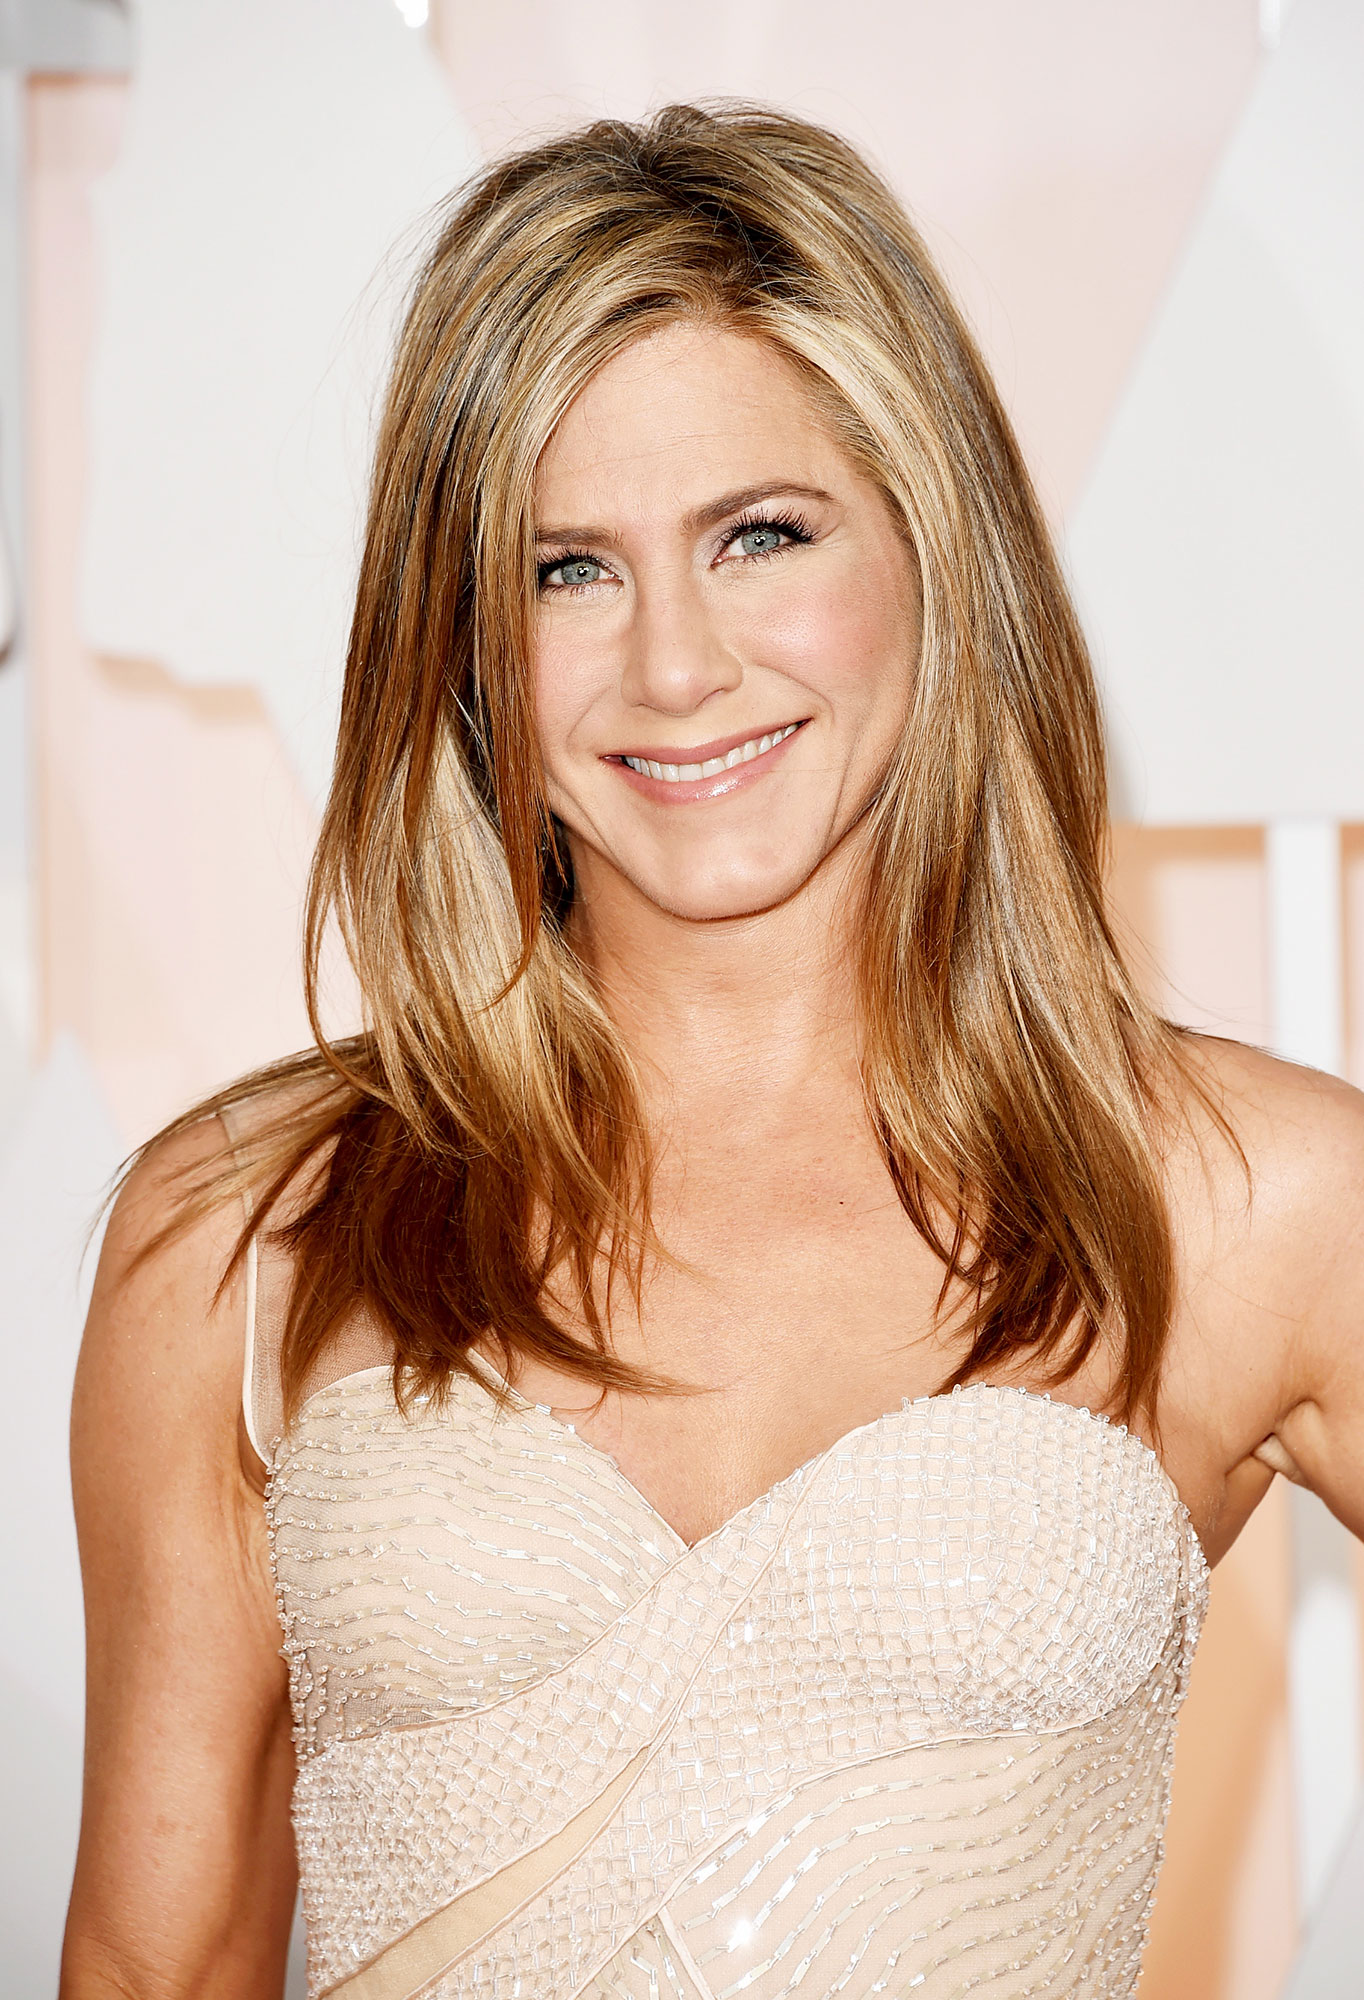 Jennifer Aniston - Stars Who Have Never Won Oscars - She may be America's sweetheart, but the Friends alum has never even been nominated for an Academy Award, despite her more serious roles in films such as The Good Girl and Cake . She did, however, win a Golden Globe for her famous role in her long-running NBC hit.